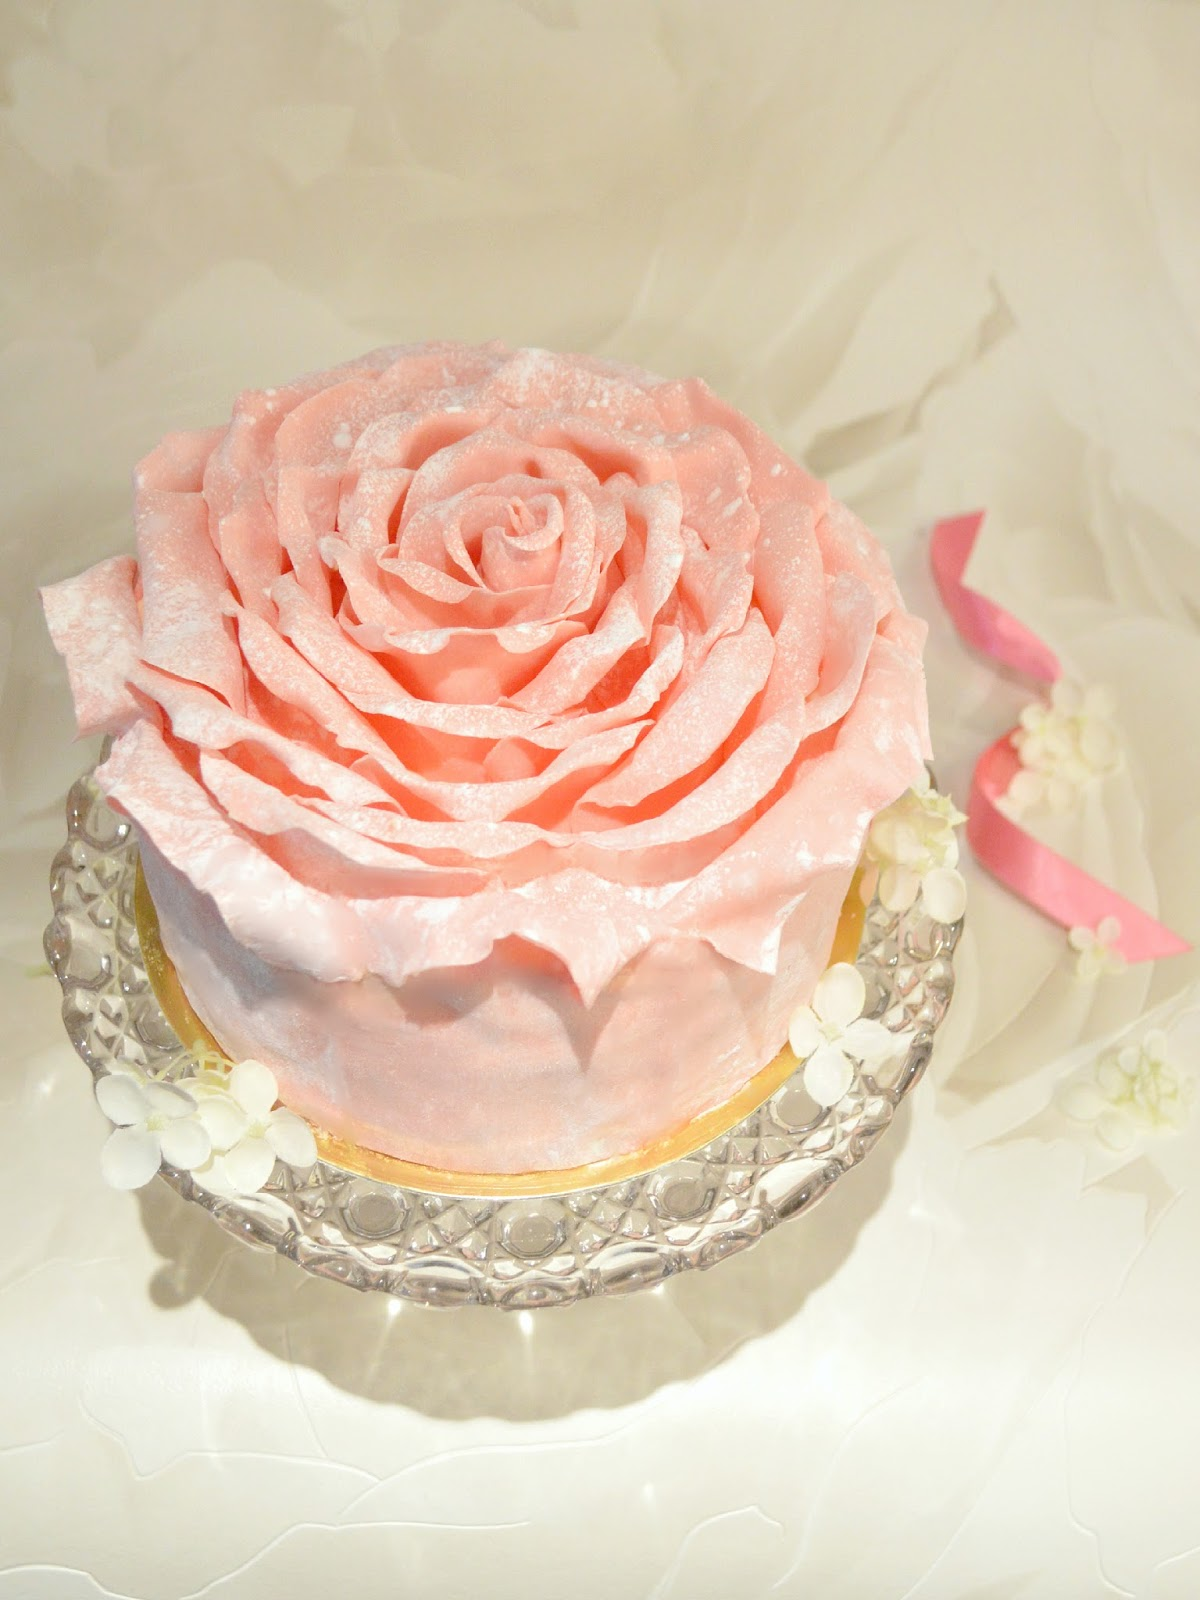 Cherie Kelly's Strawberry Chocolate Rose Petal Cake